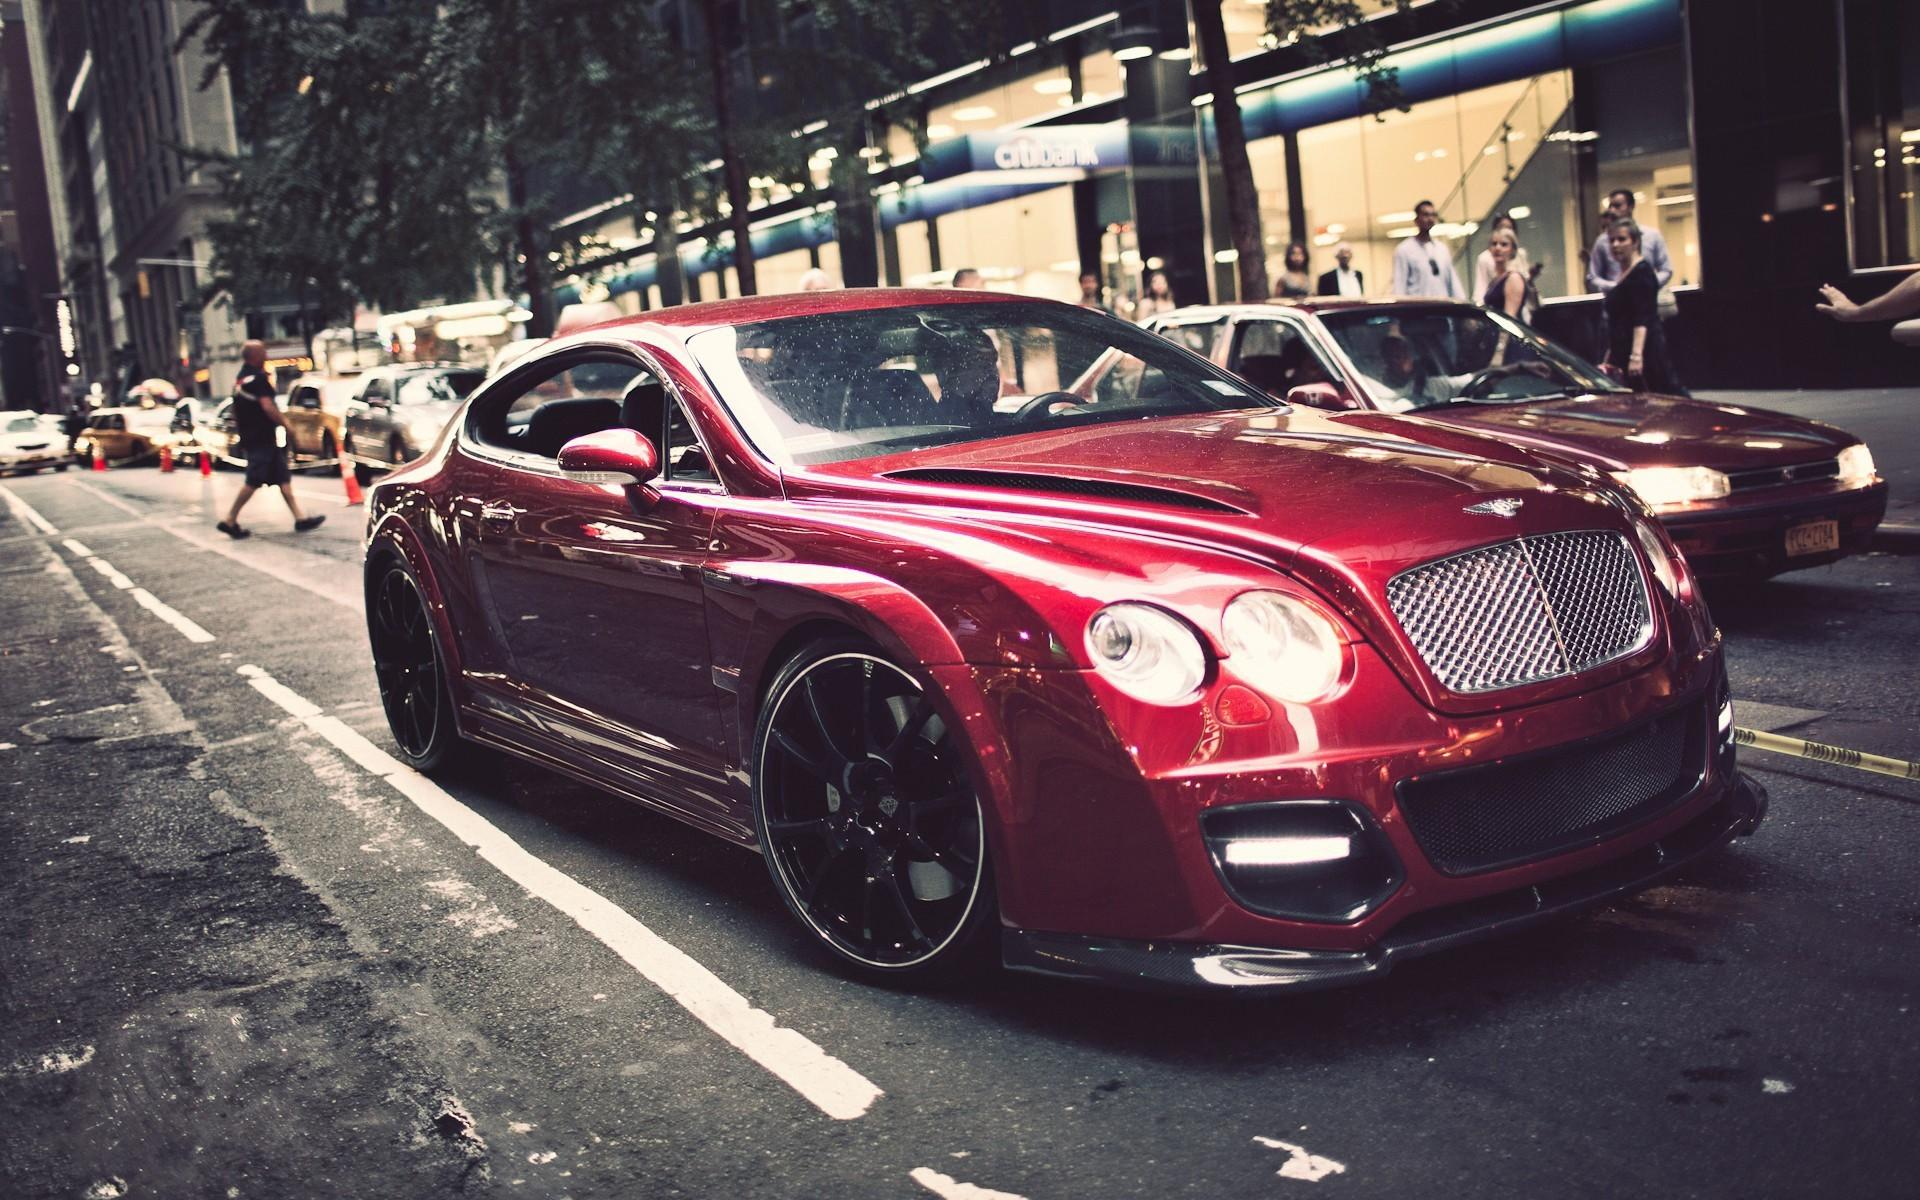 Red Bentley on the street